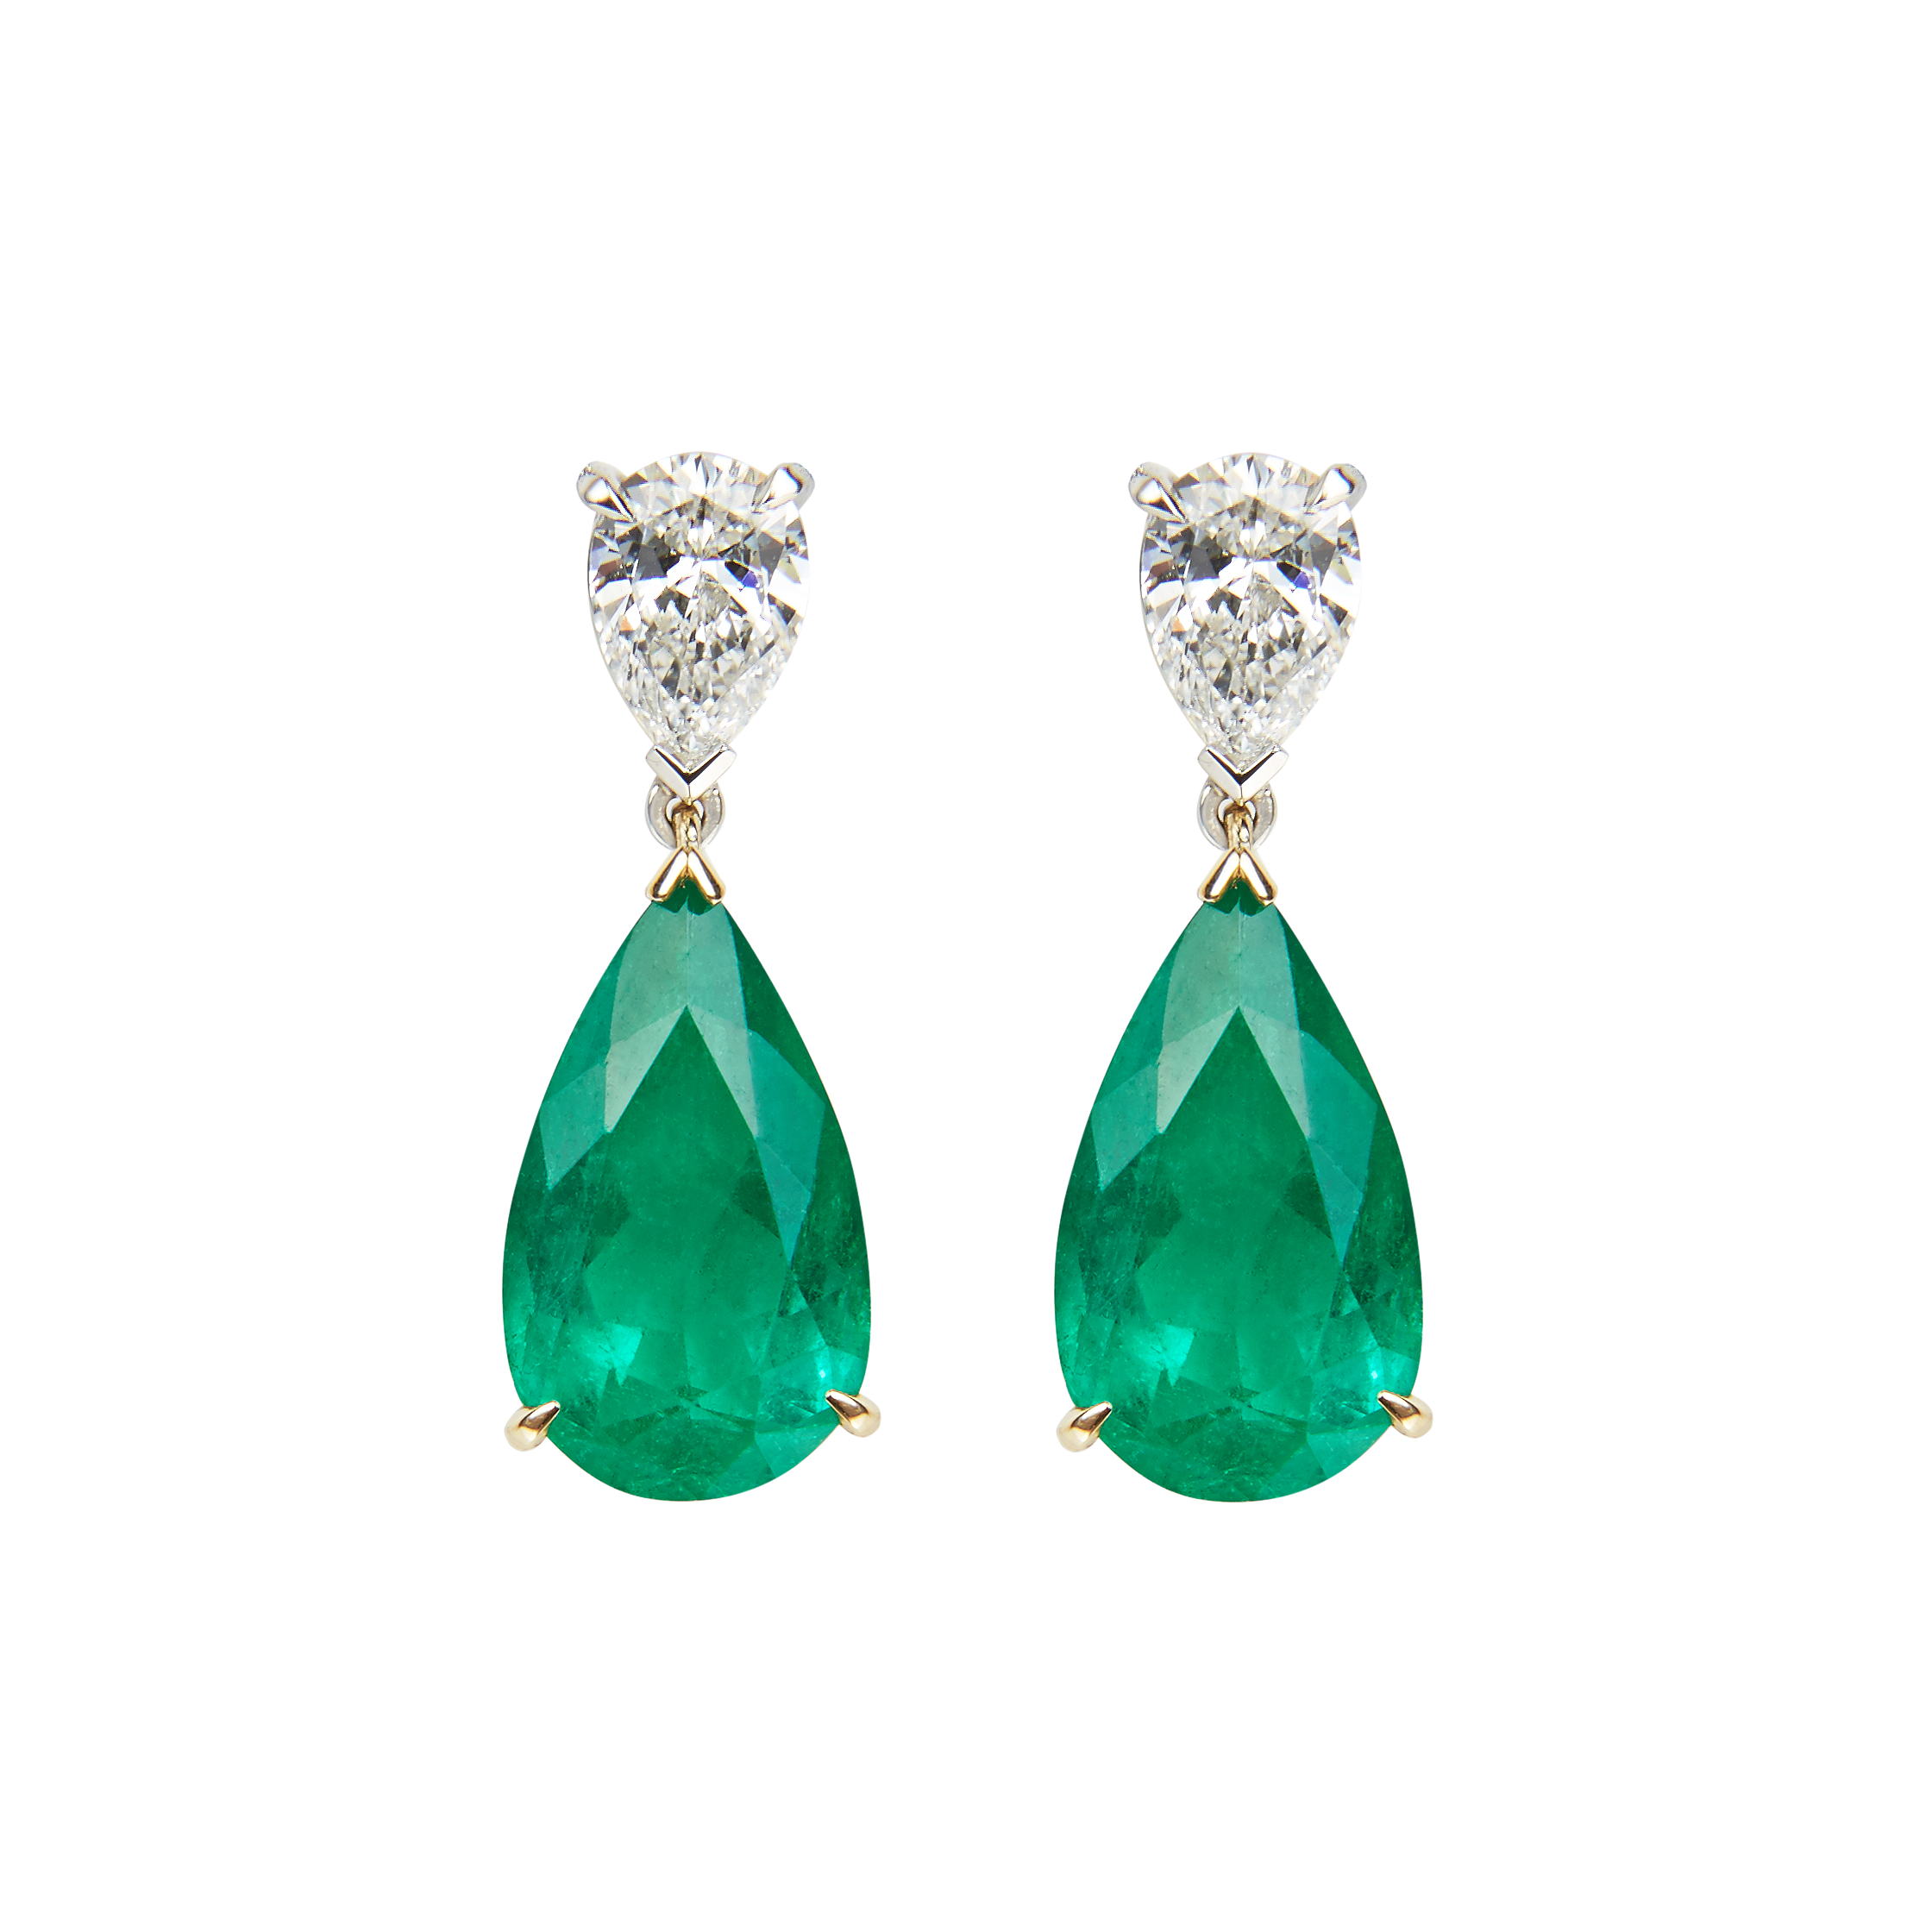 in jewellery diamonds with white gold earrings tw emerald